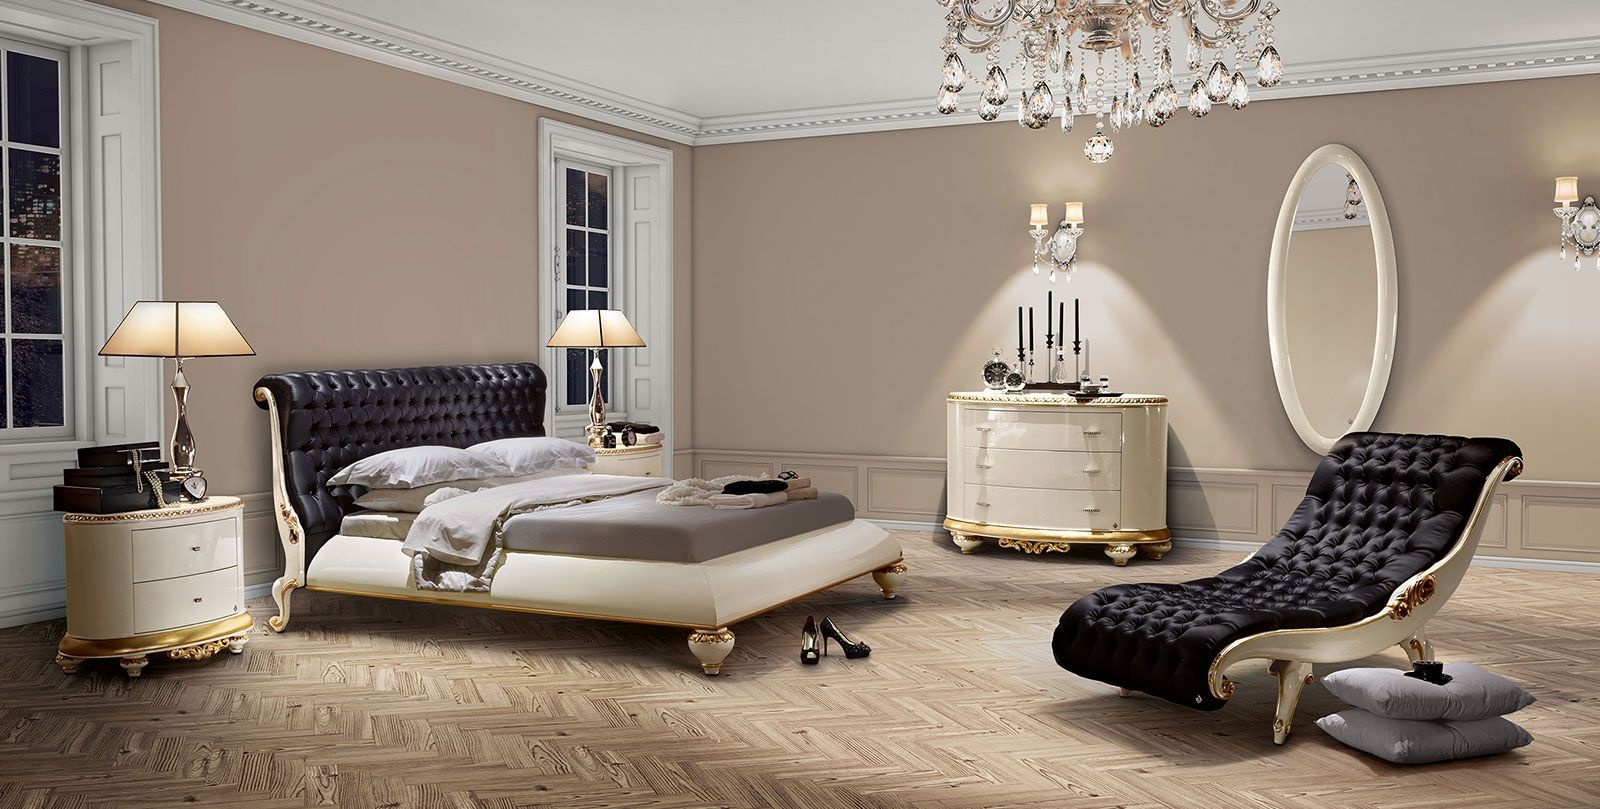 Modern Baroque Bedroom Jetclass Venezia Bedroom Black Buttoned Home Decor Master